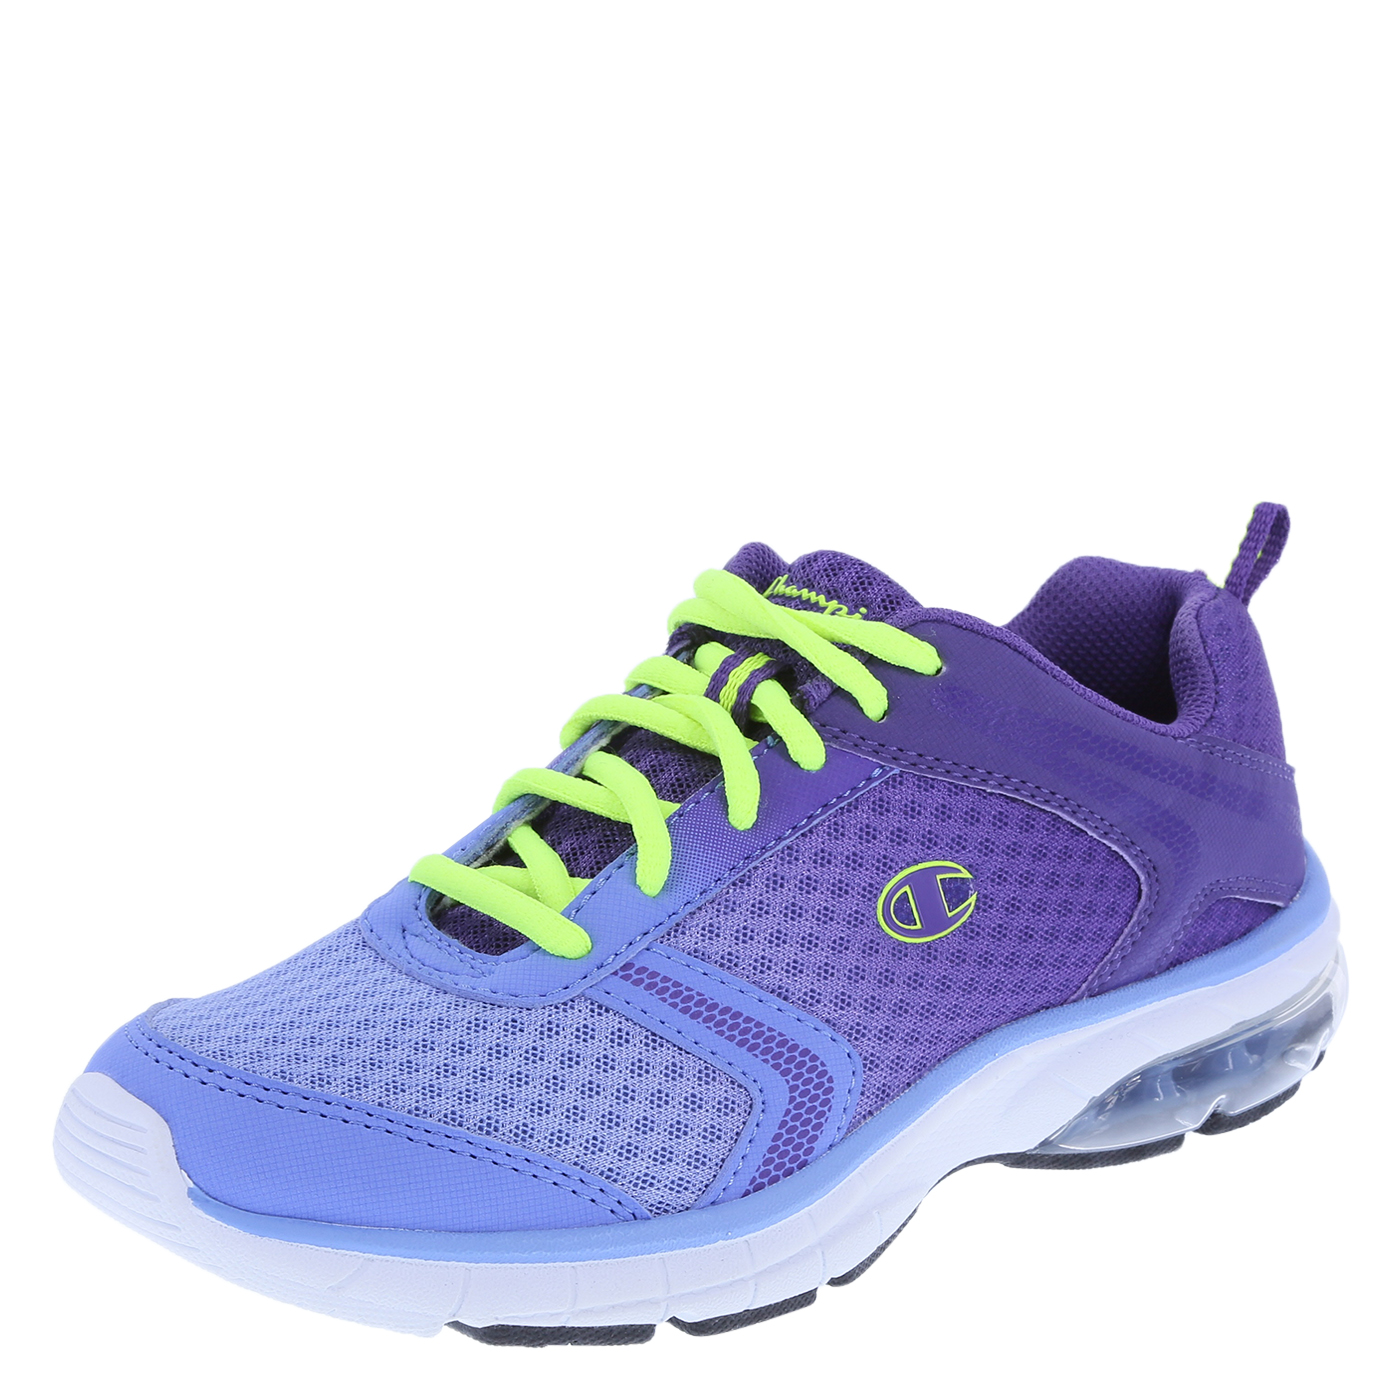 Best Budget Cross Trainer Shoes